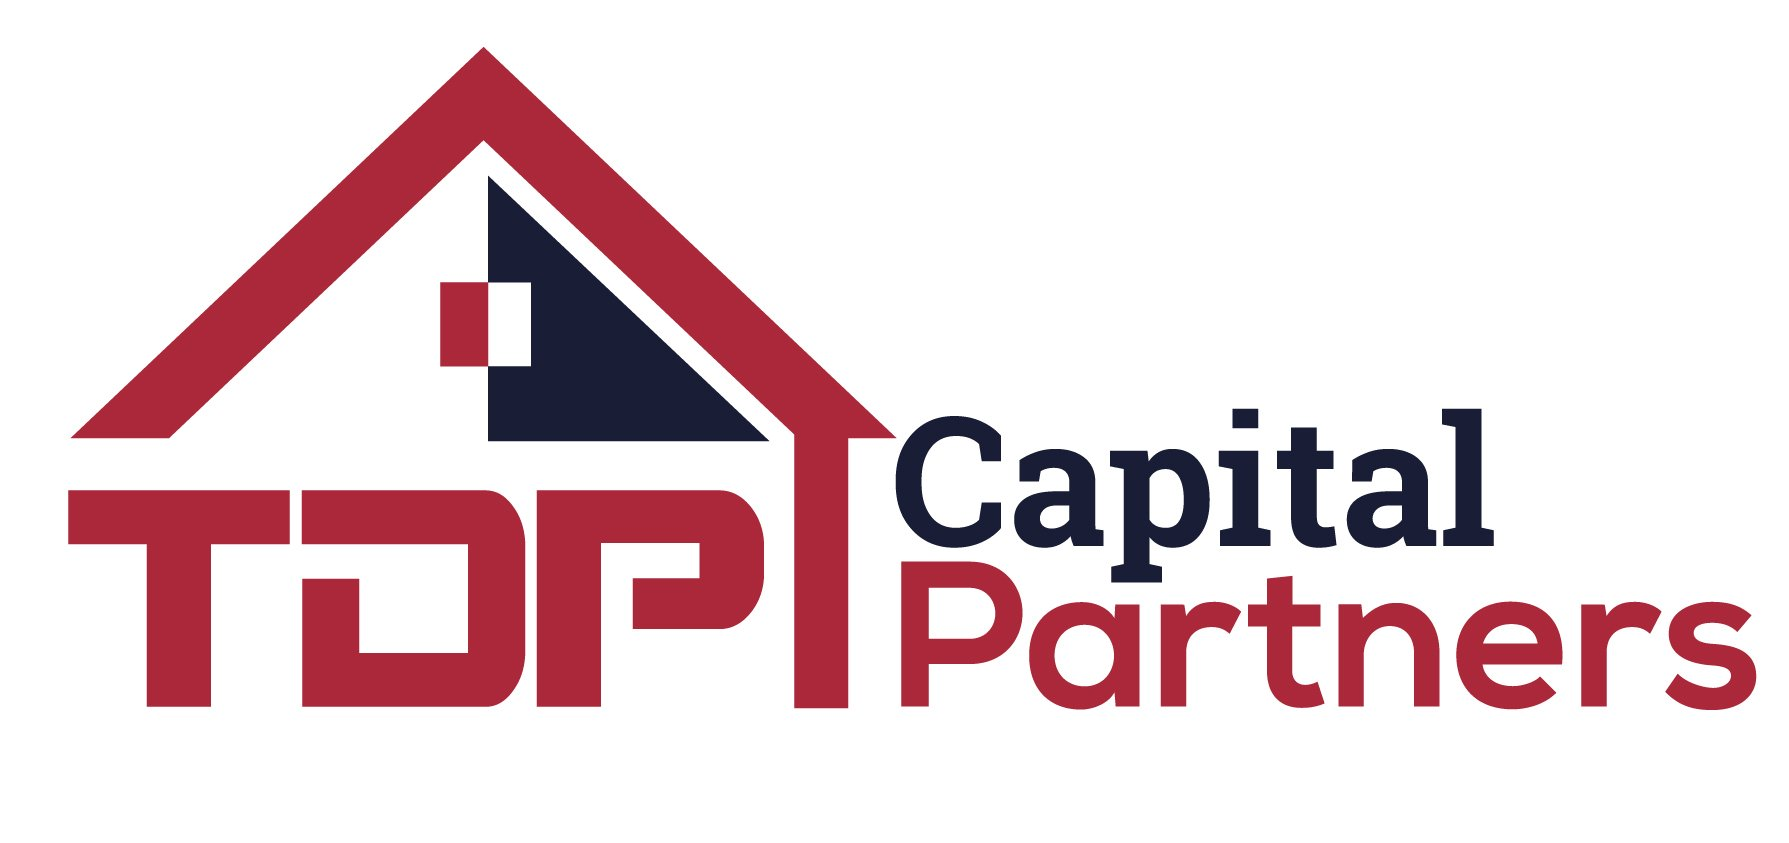 TDP Capital Partners logo